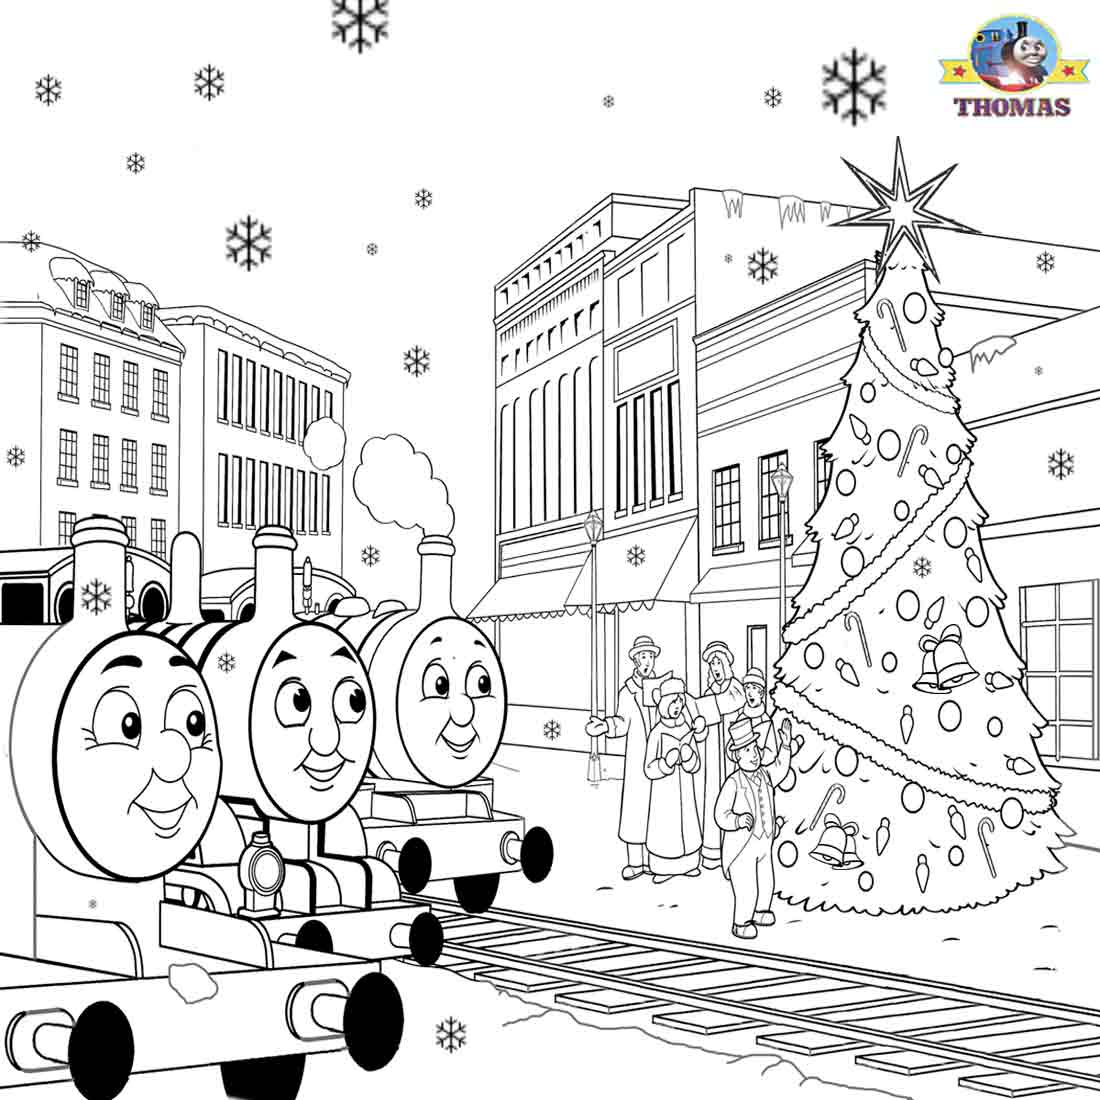 Clip Art Diesel 10 Coloring Page train thomas the tank engine friends free online games and toys james percy christmas coloring sheets for children printable pictures xmas clip art